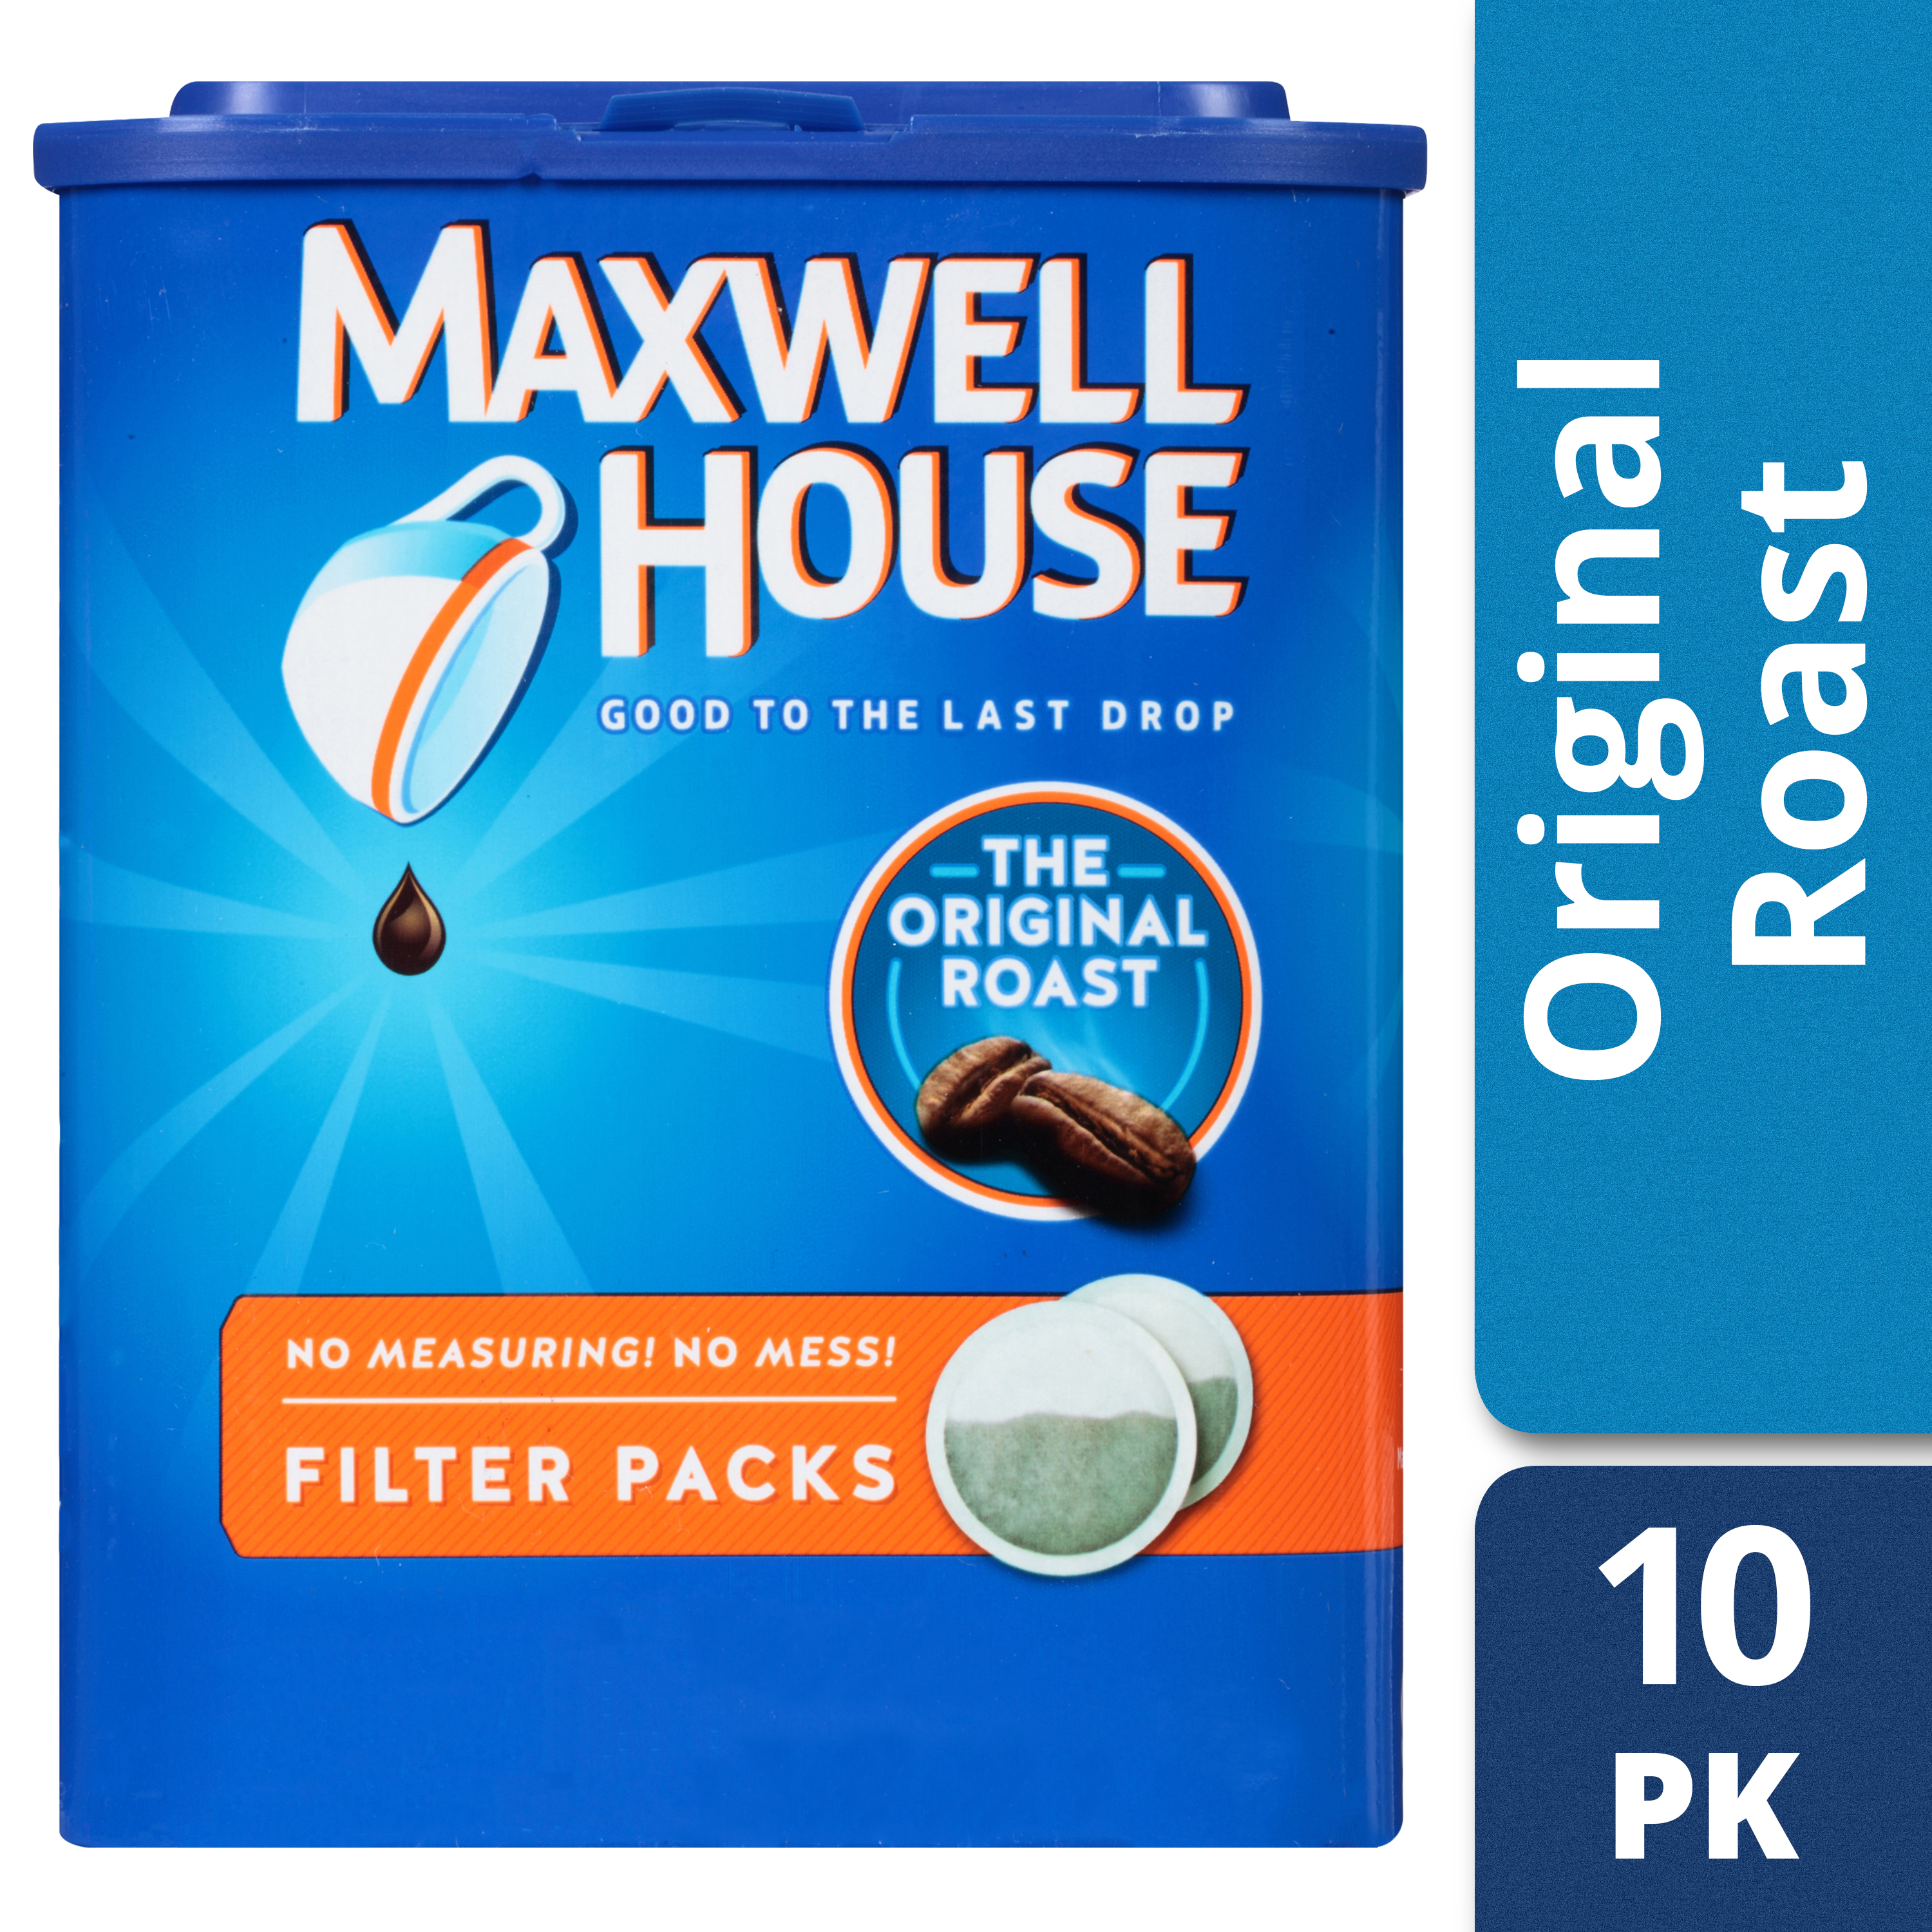 Maxwell House Original Roast Ground Coffee Filter Packs, 10 count Box